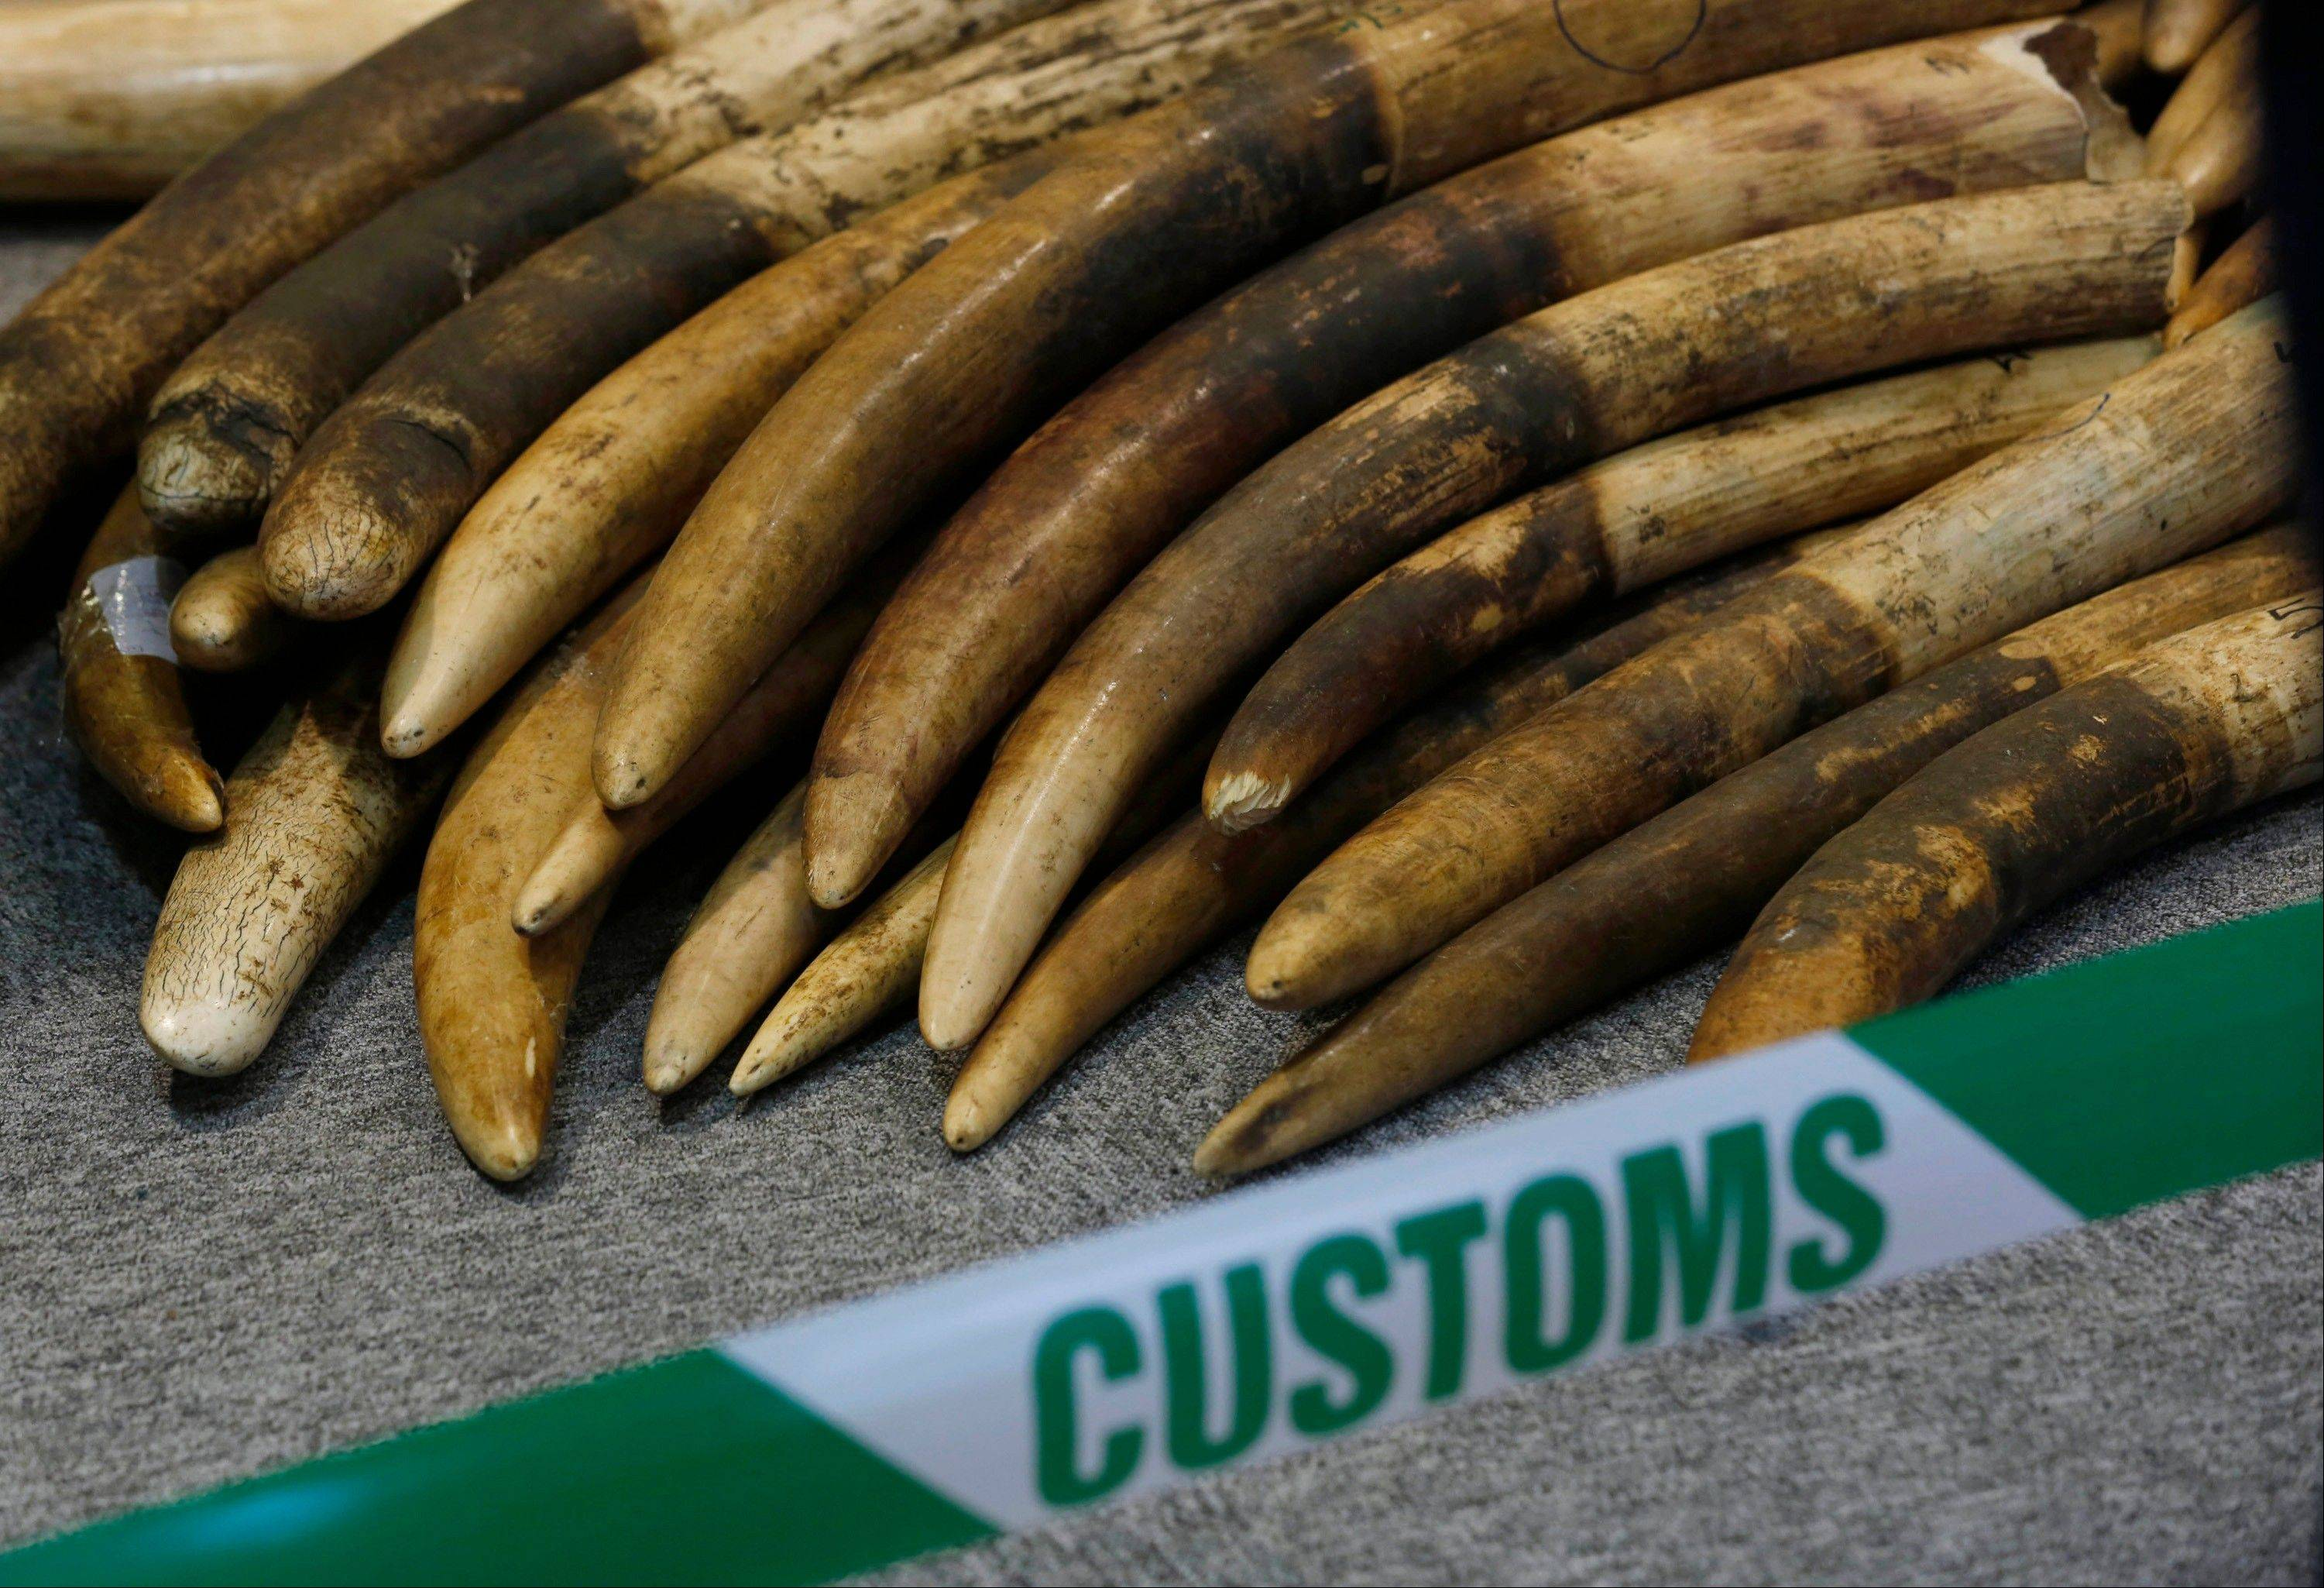 Elephant tusks are displayed after being confiscated by the Customs in Hong Kong.